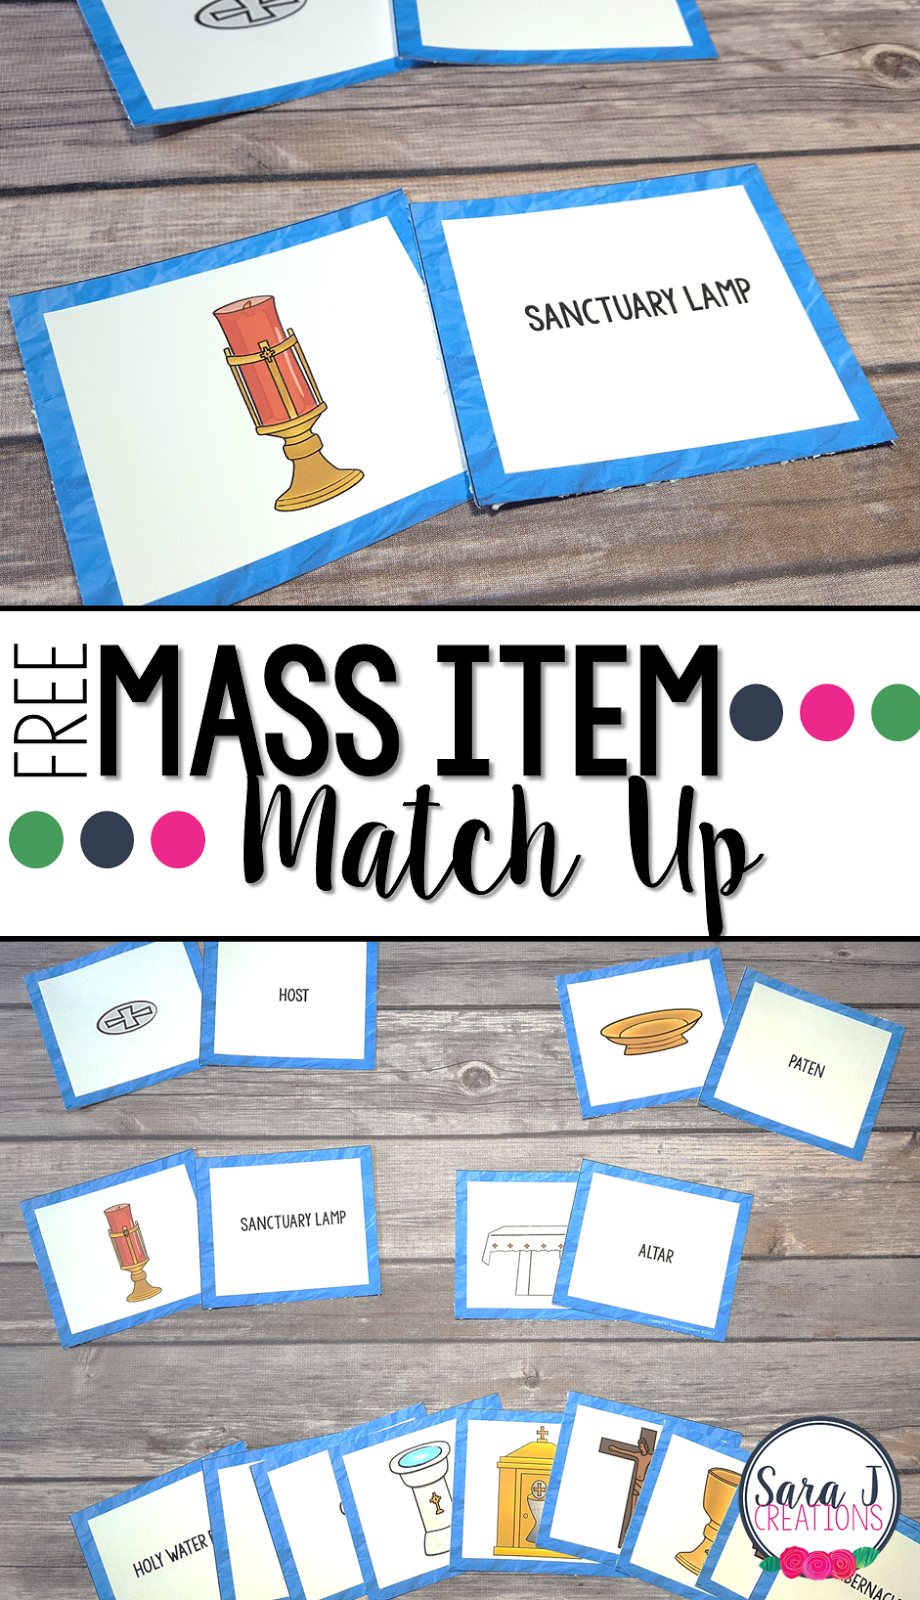 Free matching game for some of the items commonly found in the Catholic mass. Perfect for children to learn the proper names.